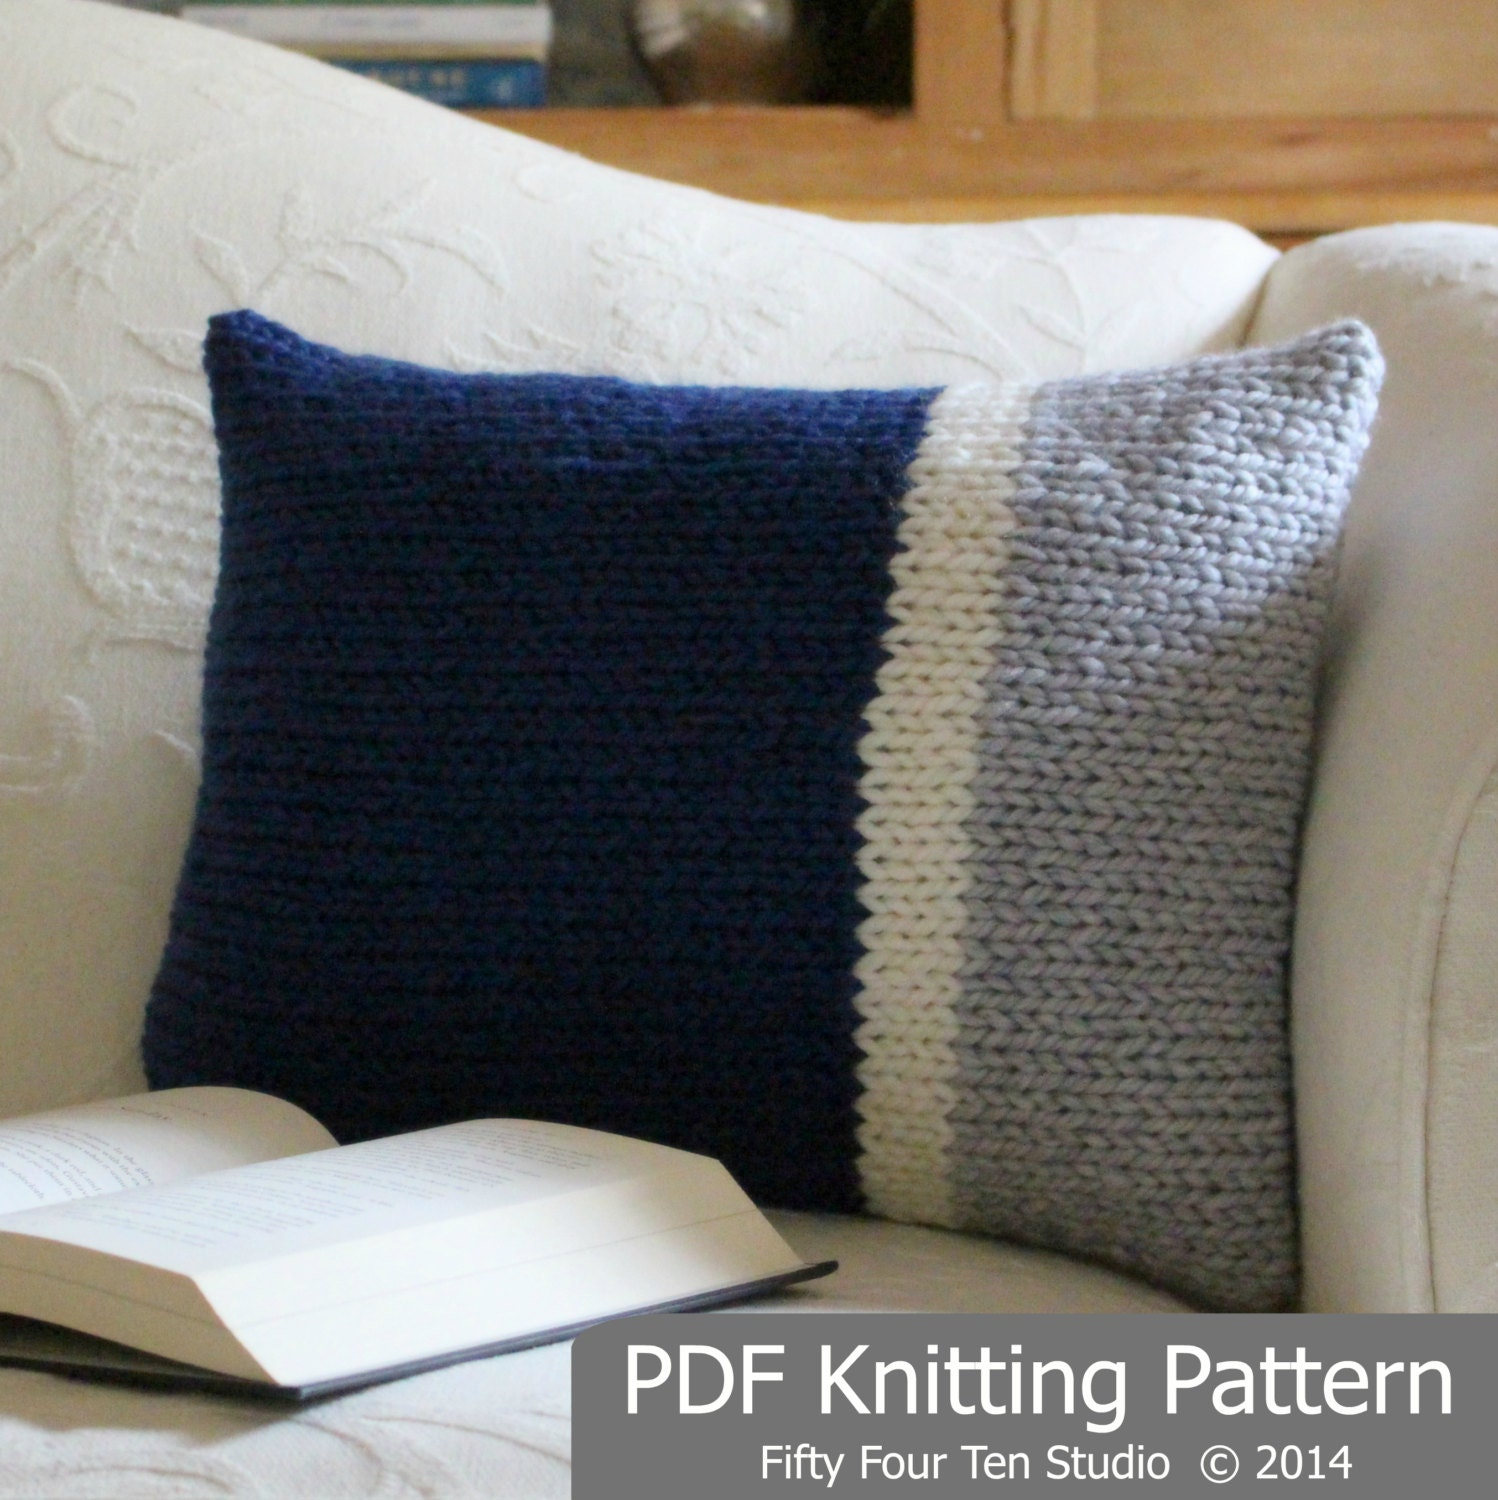 Knitting Pillow Pattern : Knitting pattern pillow cushion color block design